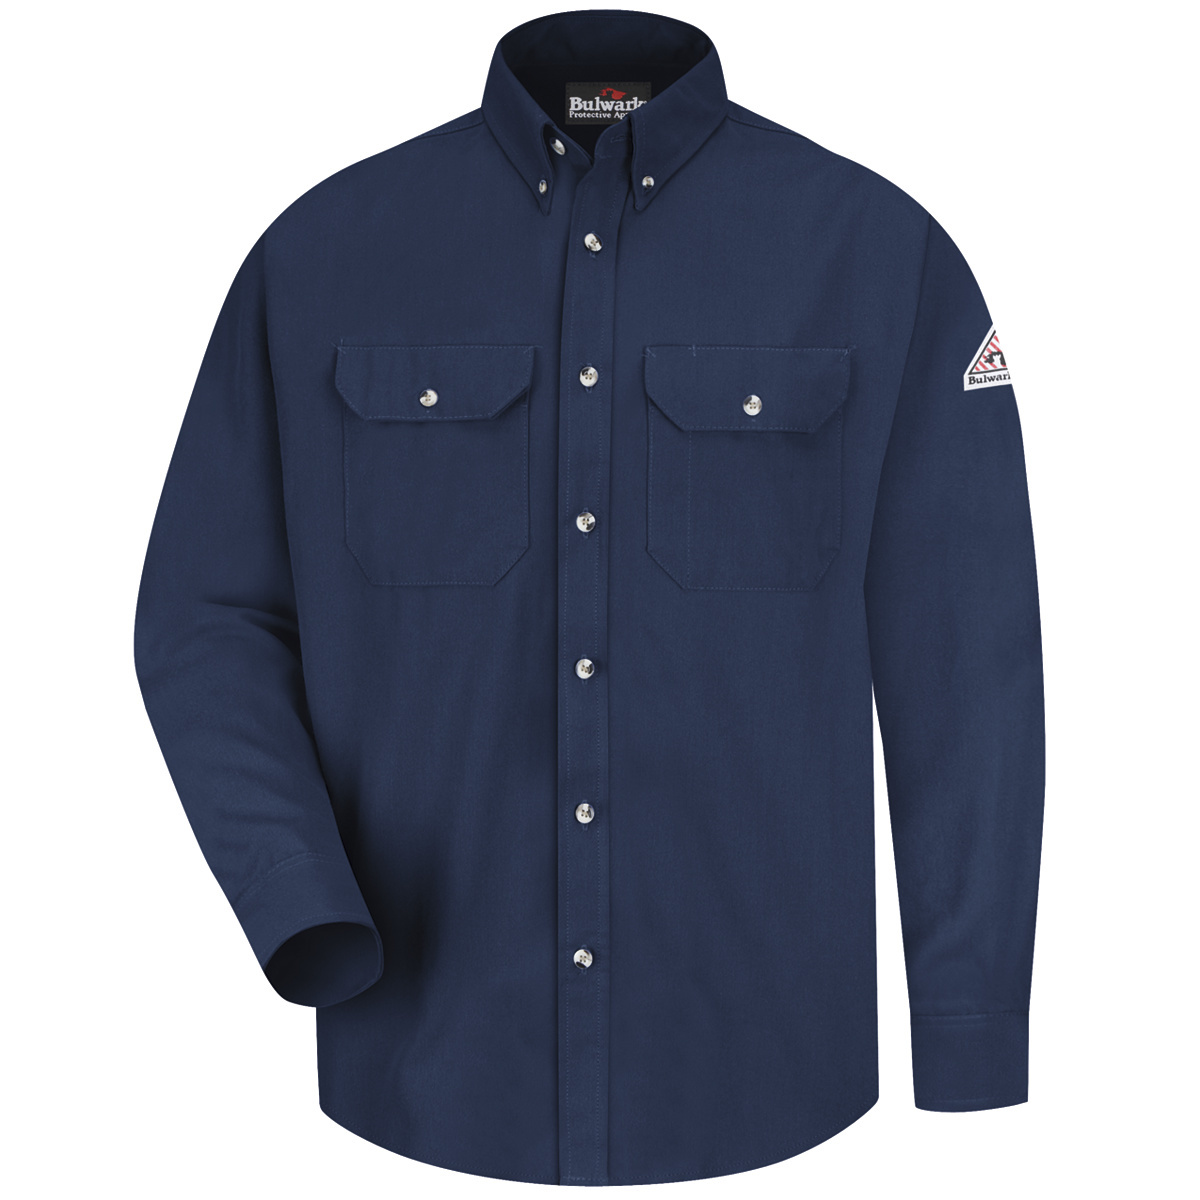 Airgas r30smu2nvlnxl bulwark x large tall navy cool for Bulwark flame resistant shirts